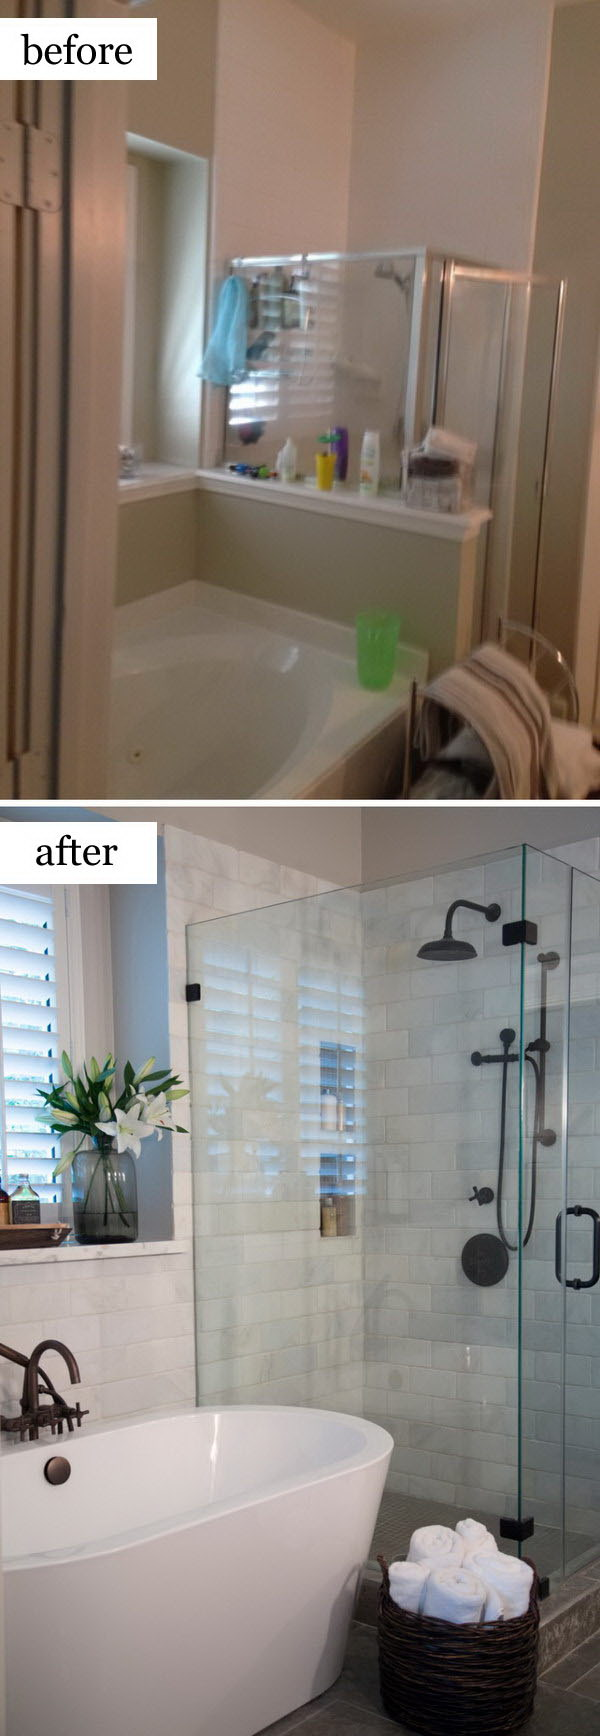 ideas for bathroom remodel before and after makeovers 20 most beautiful bathroom remodeling ideas noted list 3653